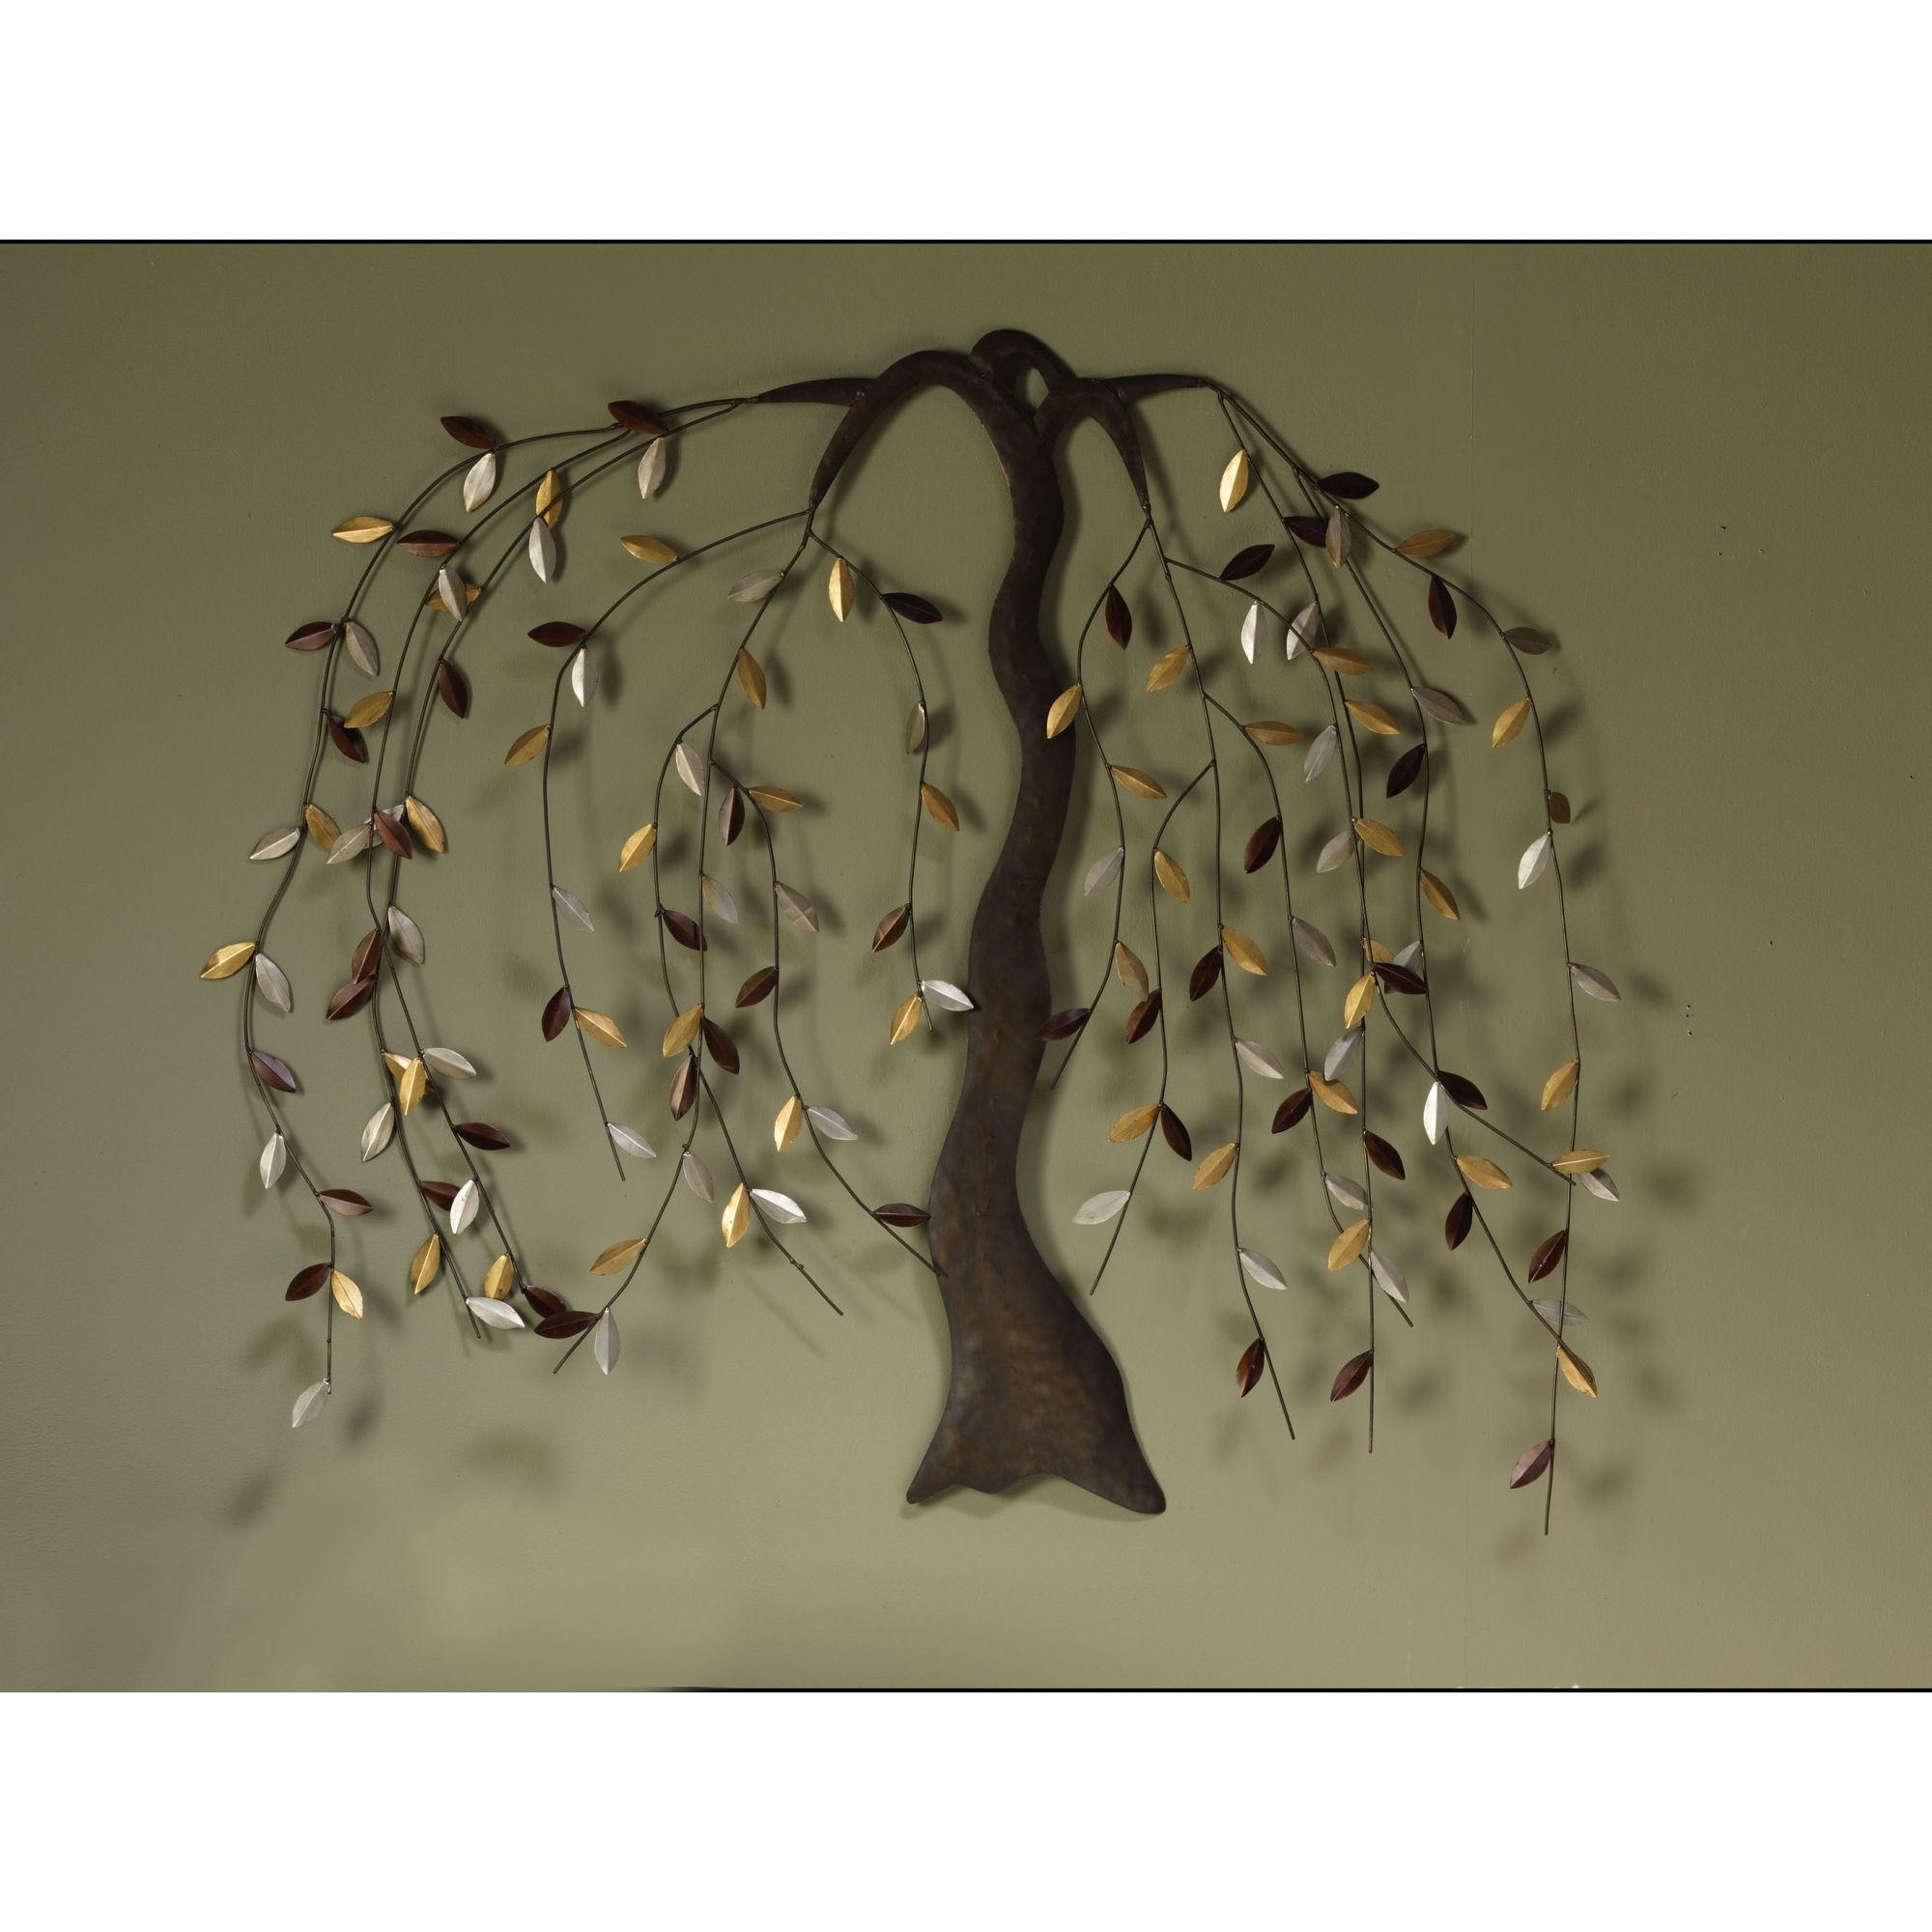 Appealing Wall Design Metal Art Wall Hangings Wall Decor Metal Pertaining To Metal Art For Wall Hangings (View 12 of 20)